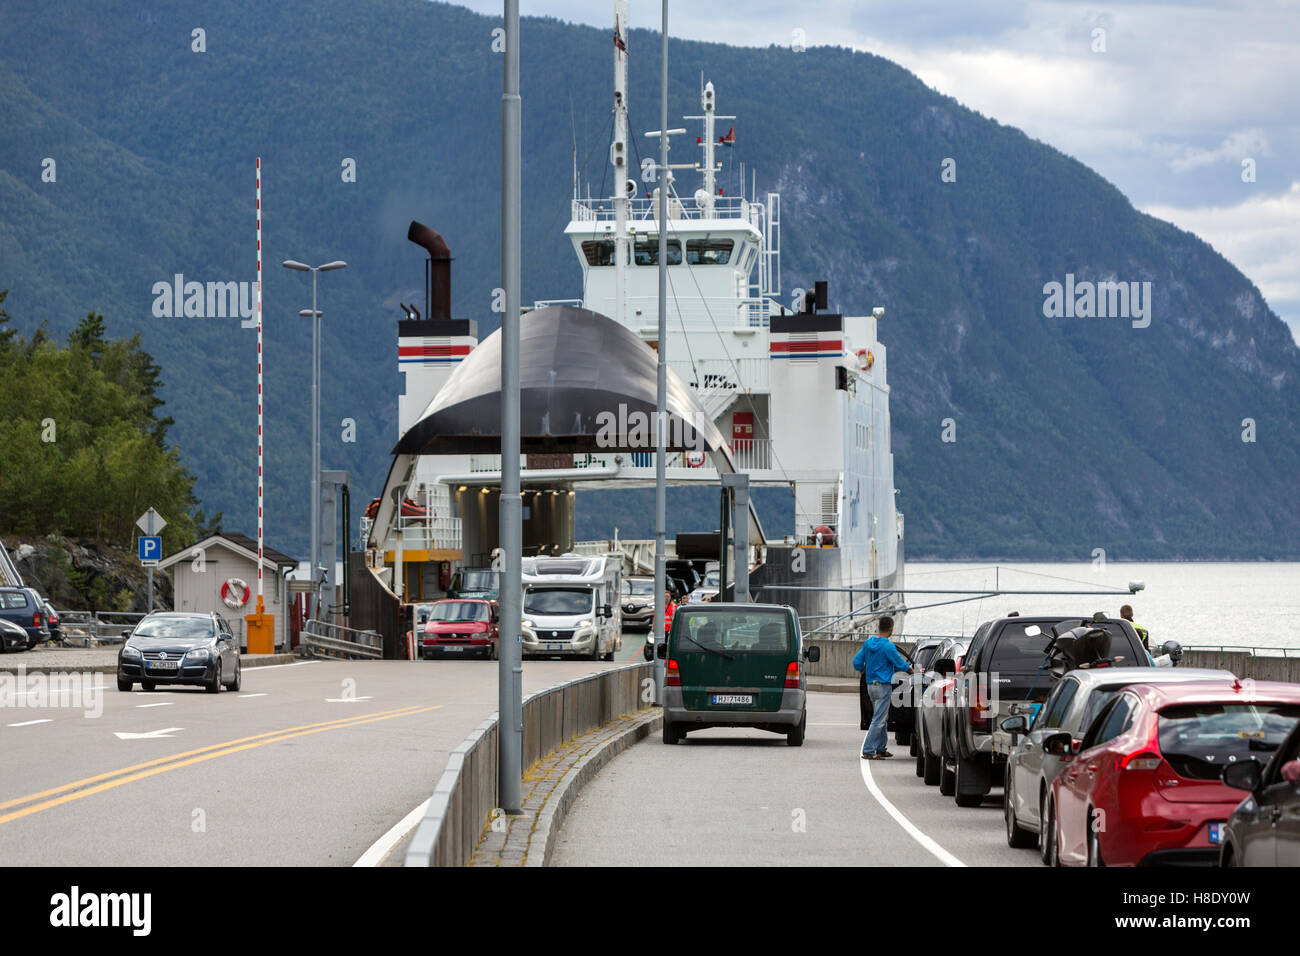 Car ferries sognefjord norway - Cars Queuing To Enter And Disembarking In The Gudvangen Kaupanger Car Ferry Crossing Sognefjord Norway